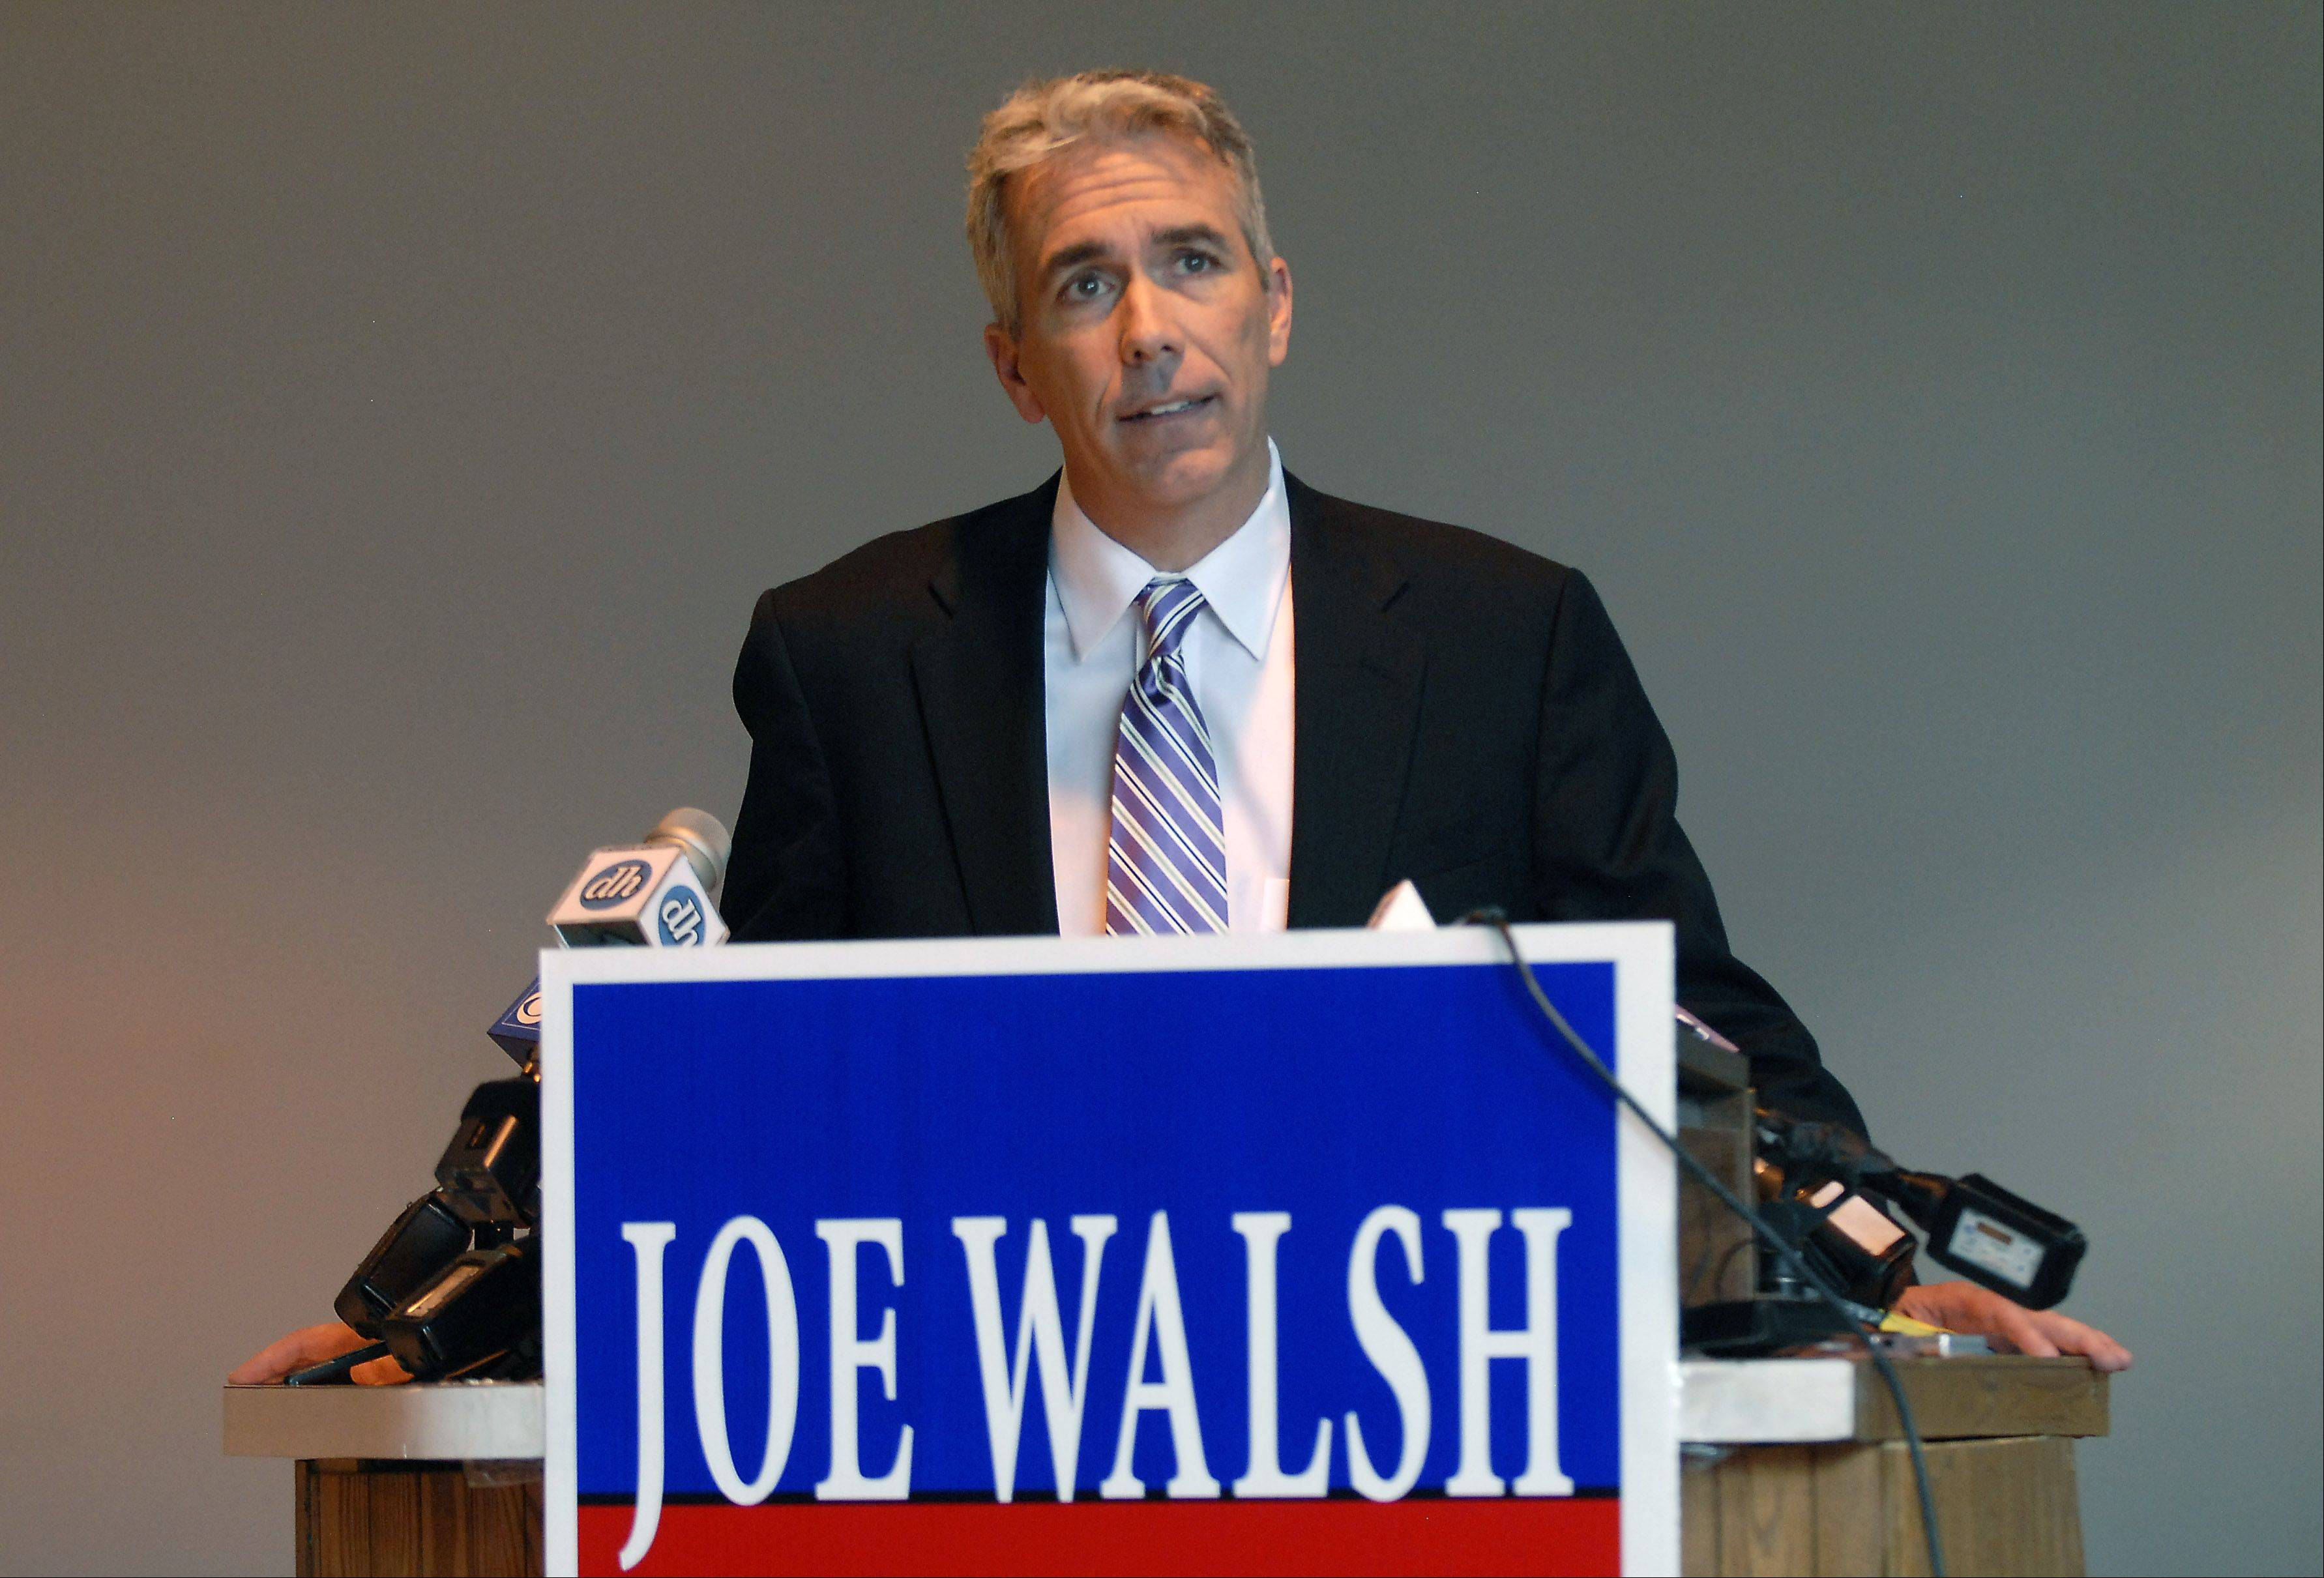 Walsh defends abortion comments